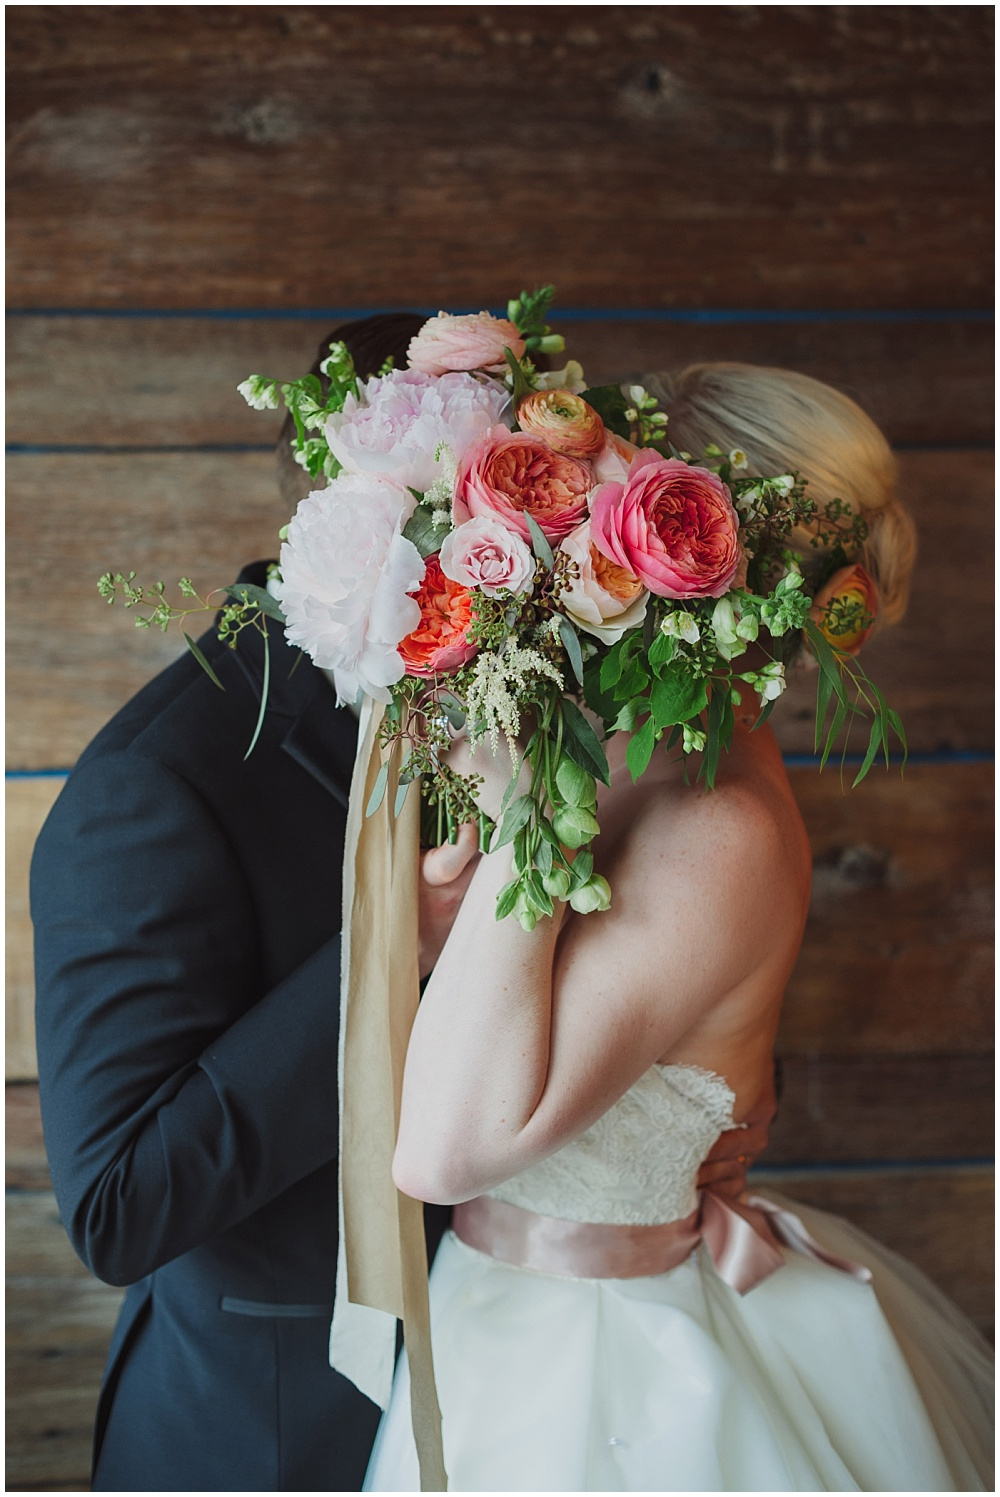 Bride and Groom with blush, pink and green bridal bouquet and silk ribbon | Ritz Charles Garden Pavilion Wedding by Stacy Able Photography & Jessica Dum Wedding Coordination